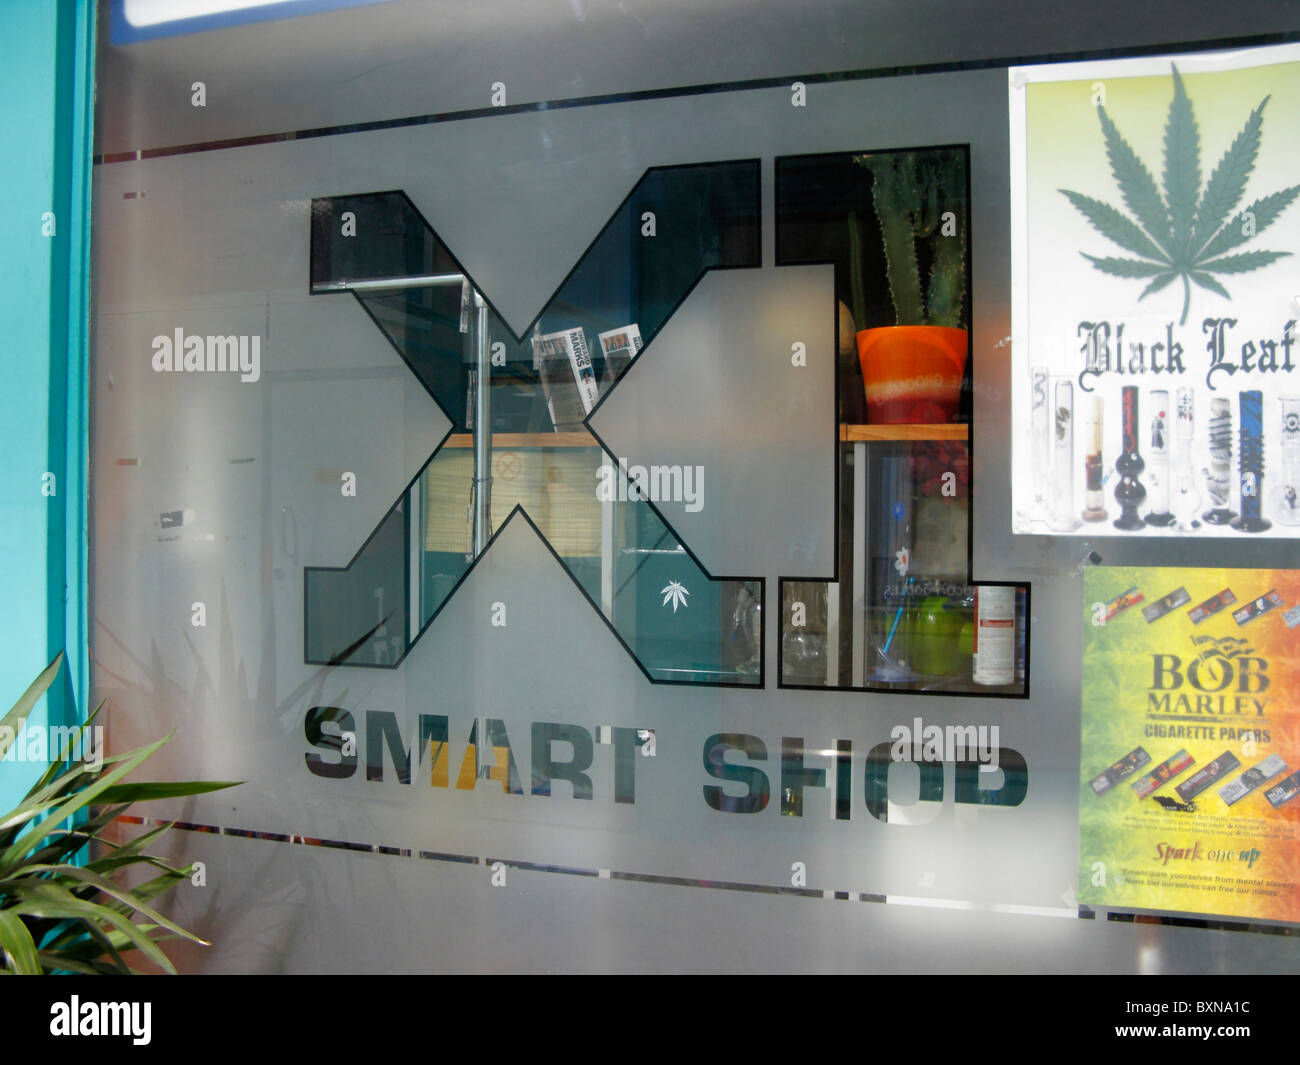 XI Smart Shop legal highs Fore St Arcade Exeter Devon UK Stock Photo